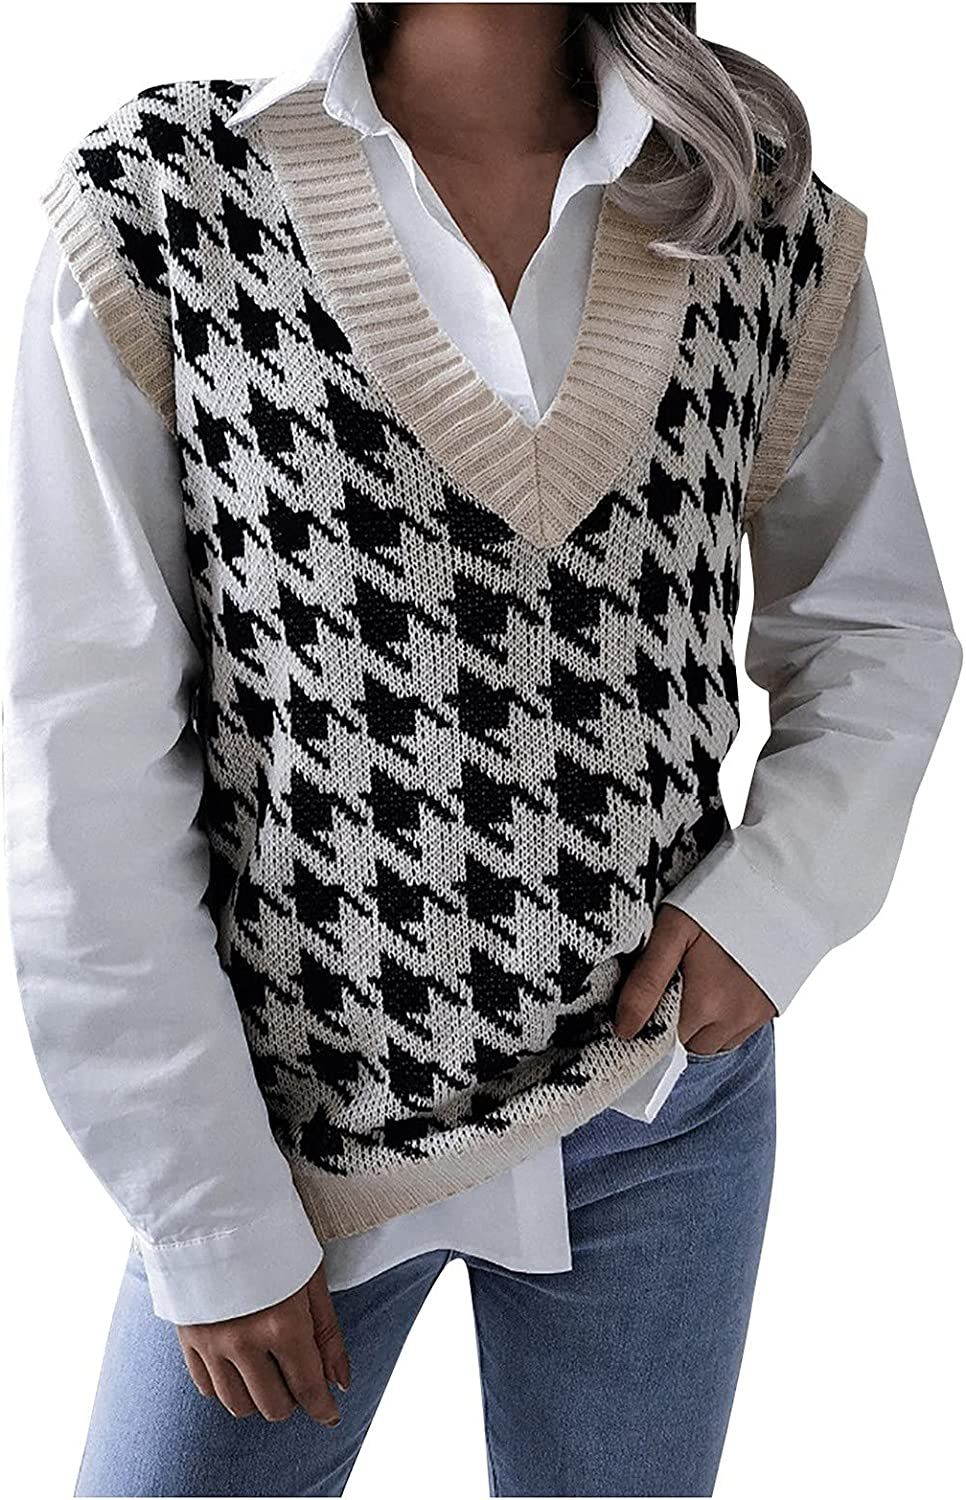 V Neck Sweater Vest For Teen Girls,Graphic Print Knit College Style Tank Tops Sweatshirt,Trendy Comfy Shirt Pullover